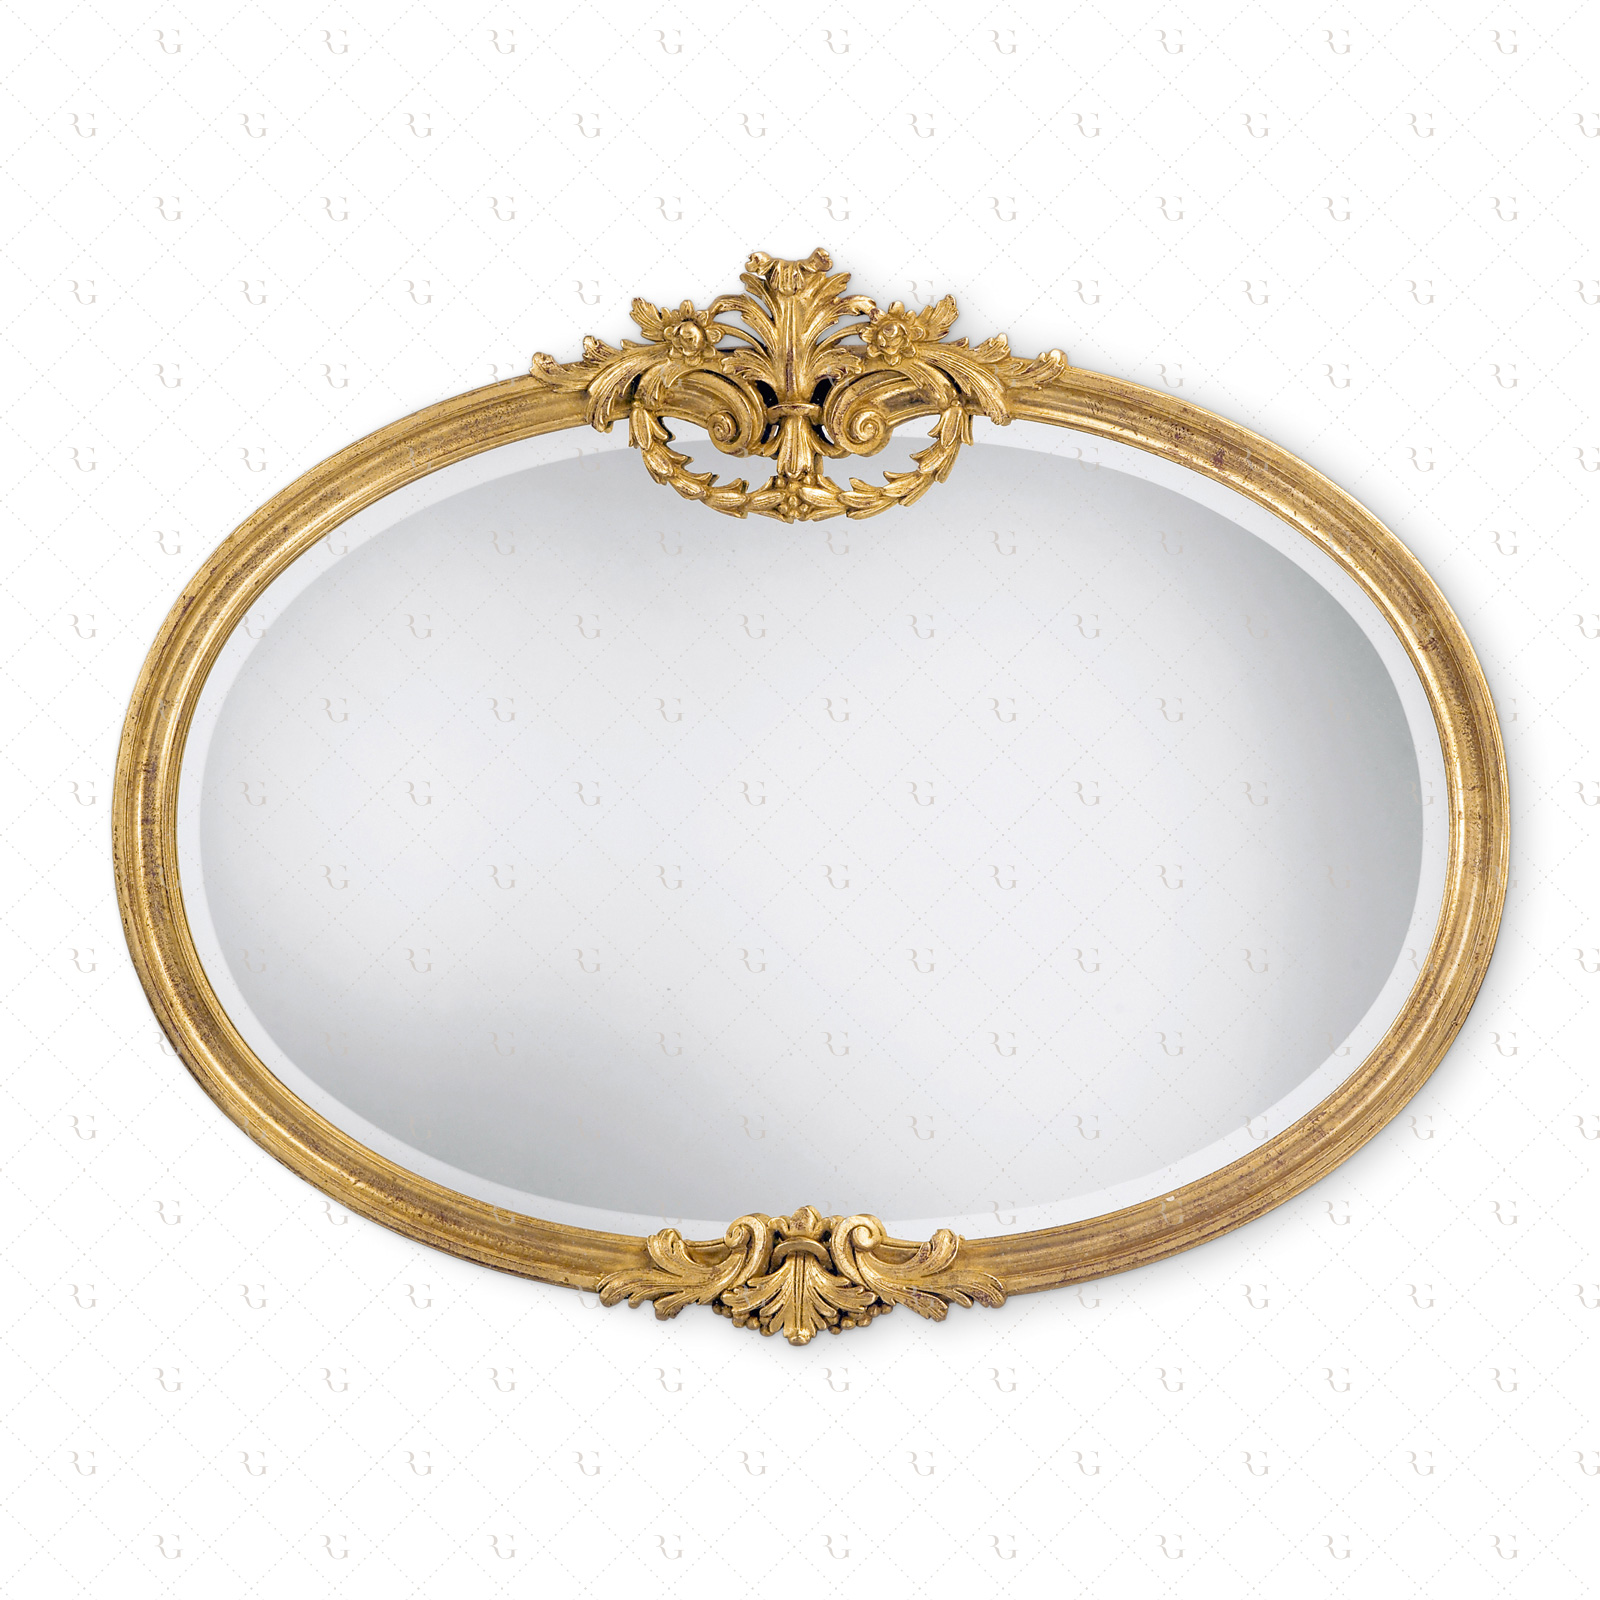 oval mirror frame. Horizontal Oval Mirror Frame